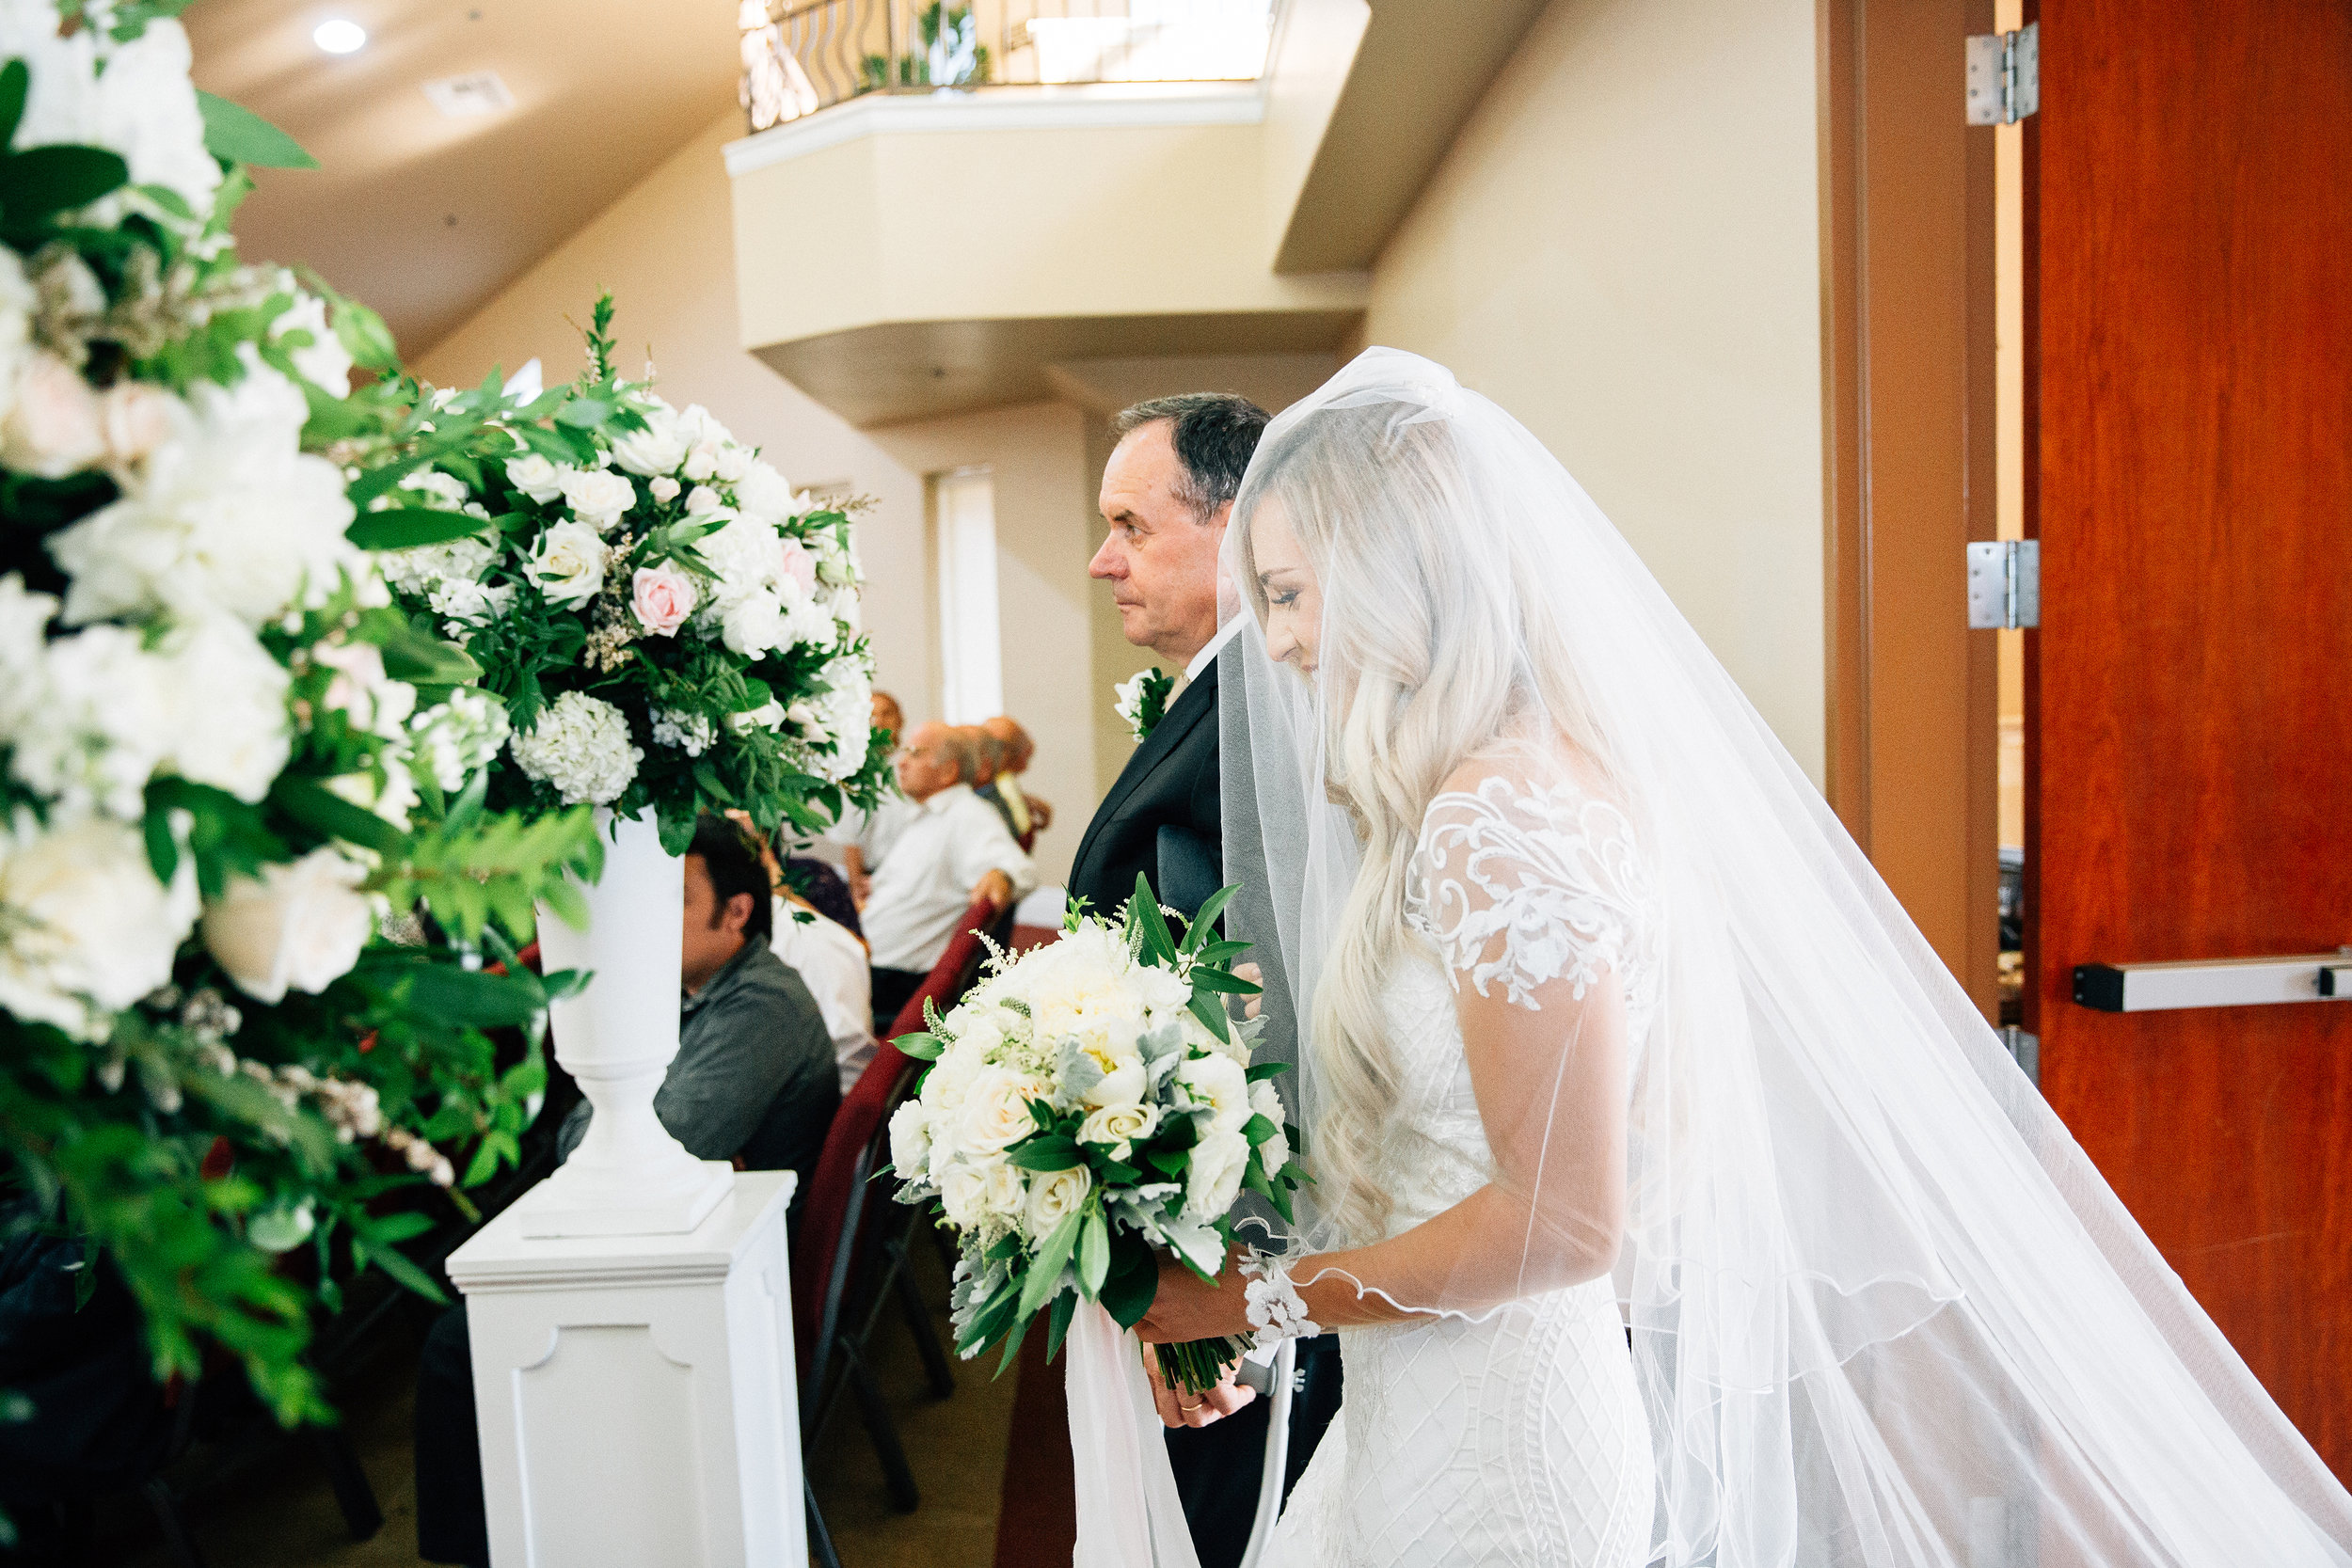 father_bride_aisle_white_flowers_violette_fleurs_anna_perevertaylo.jpg